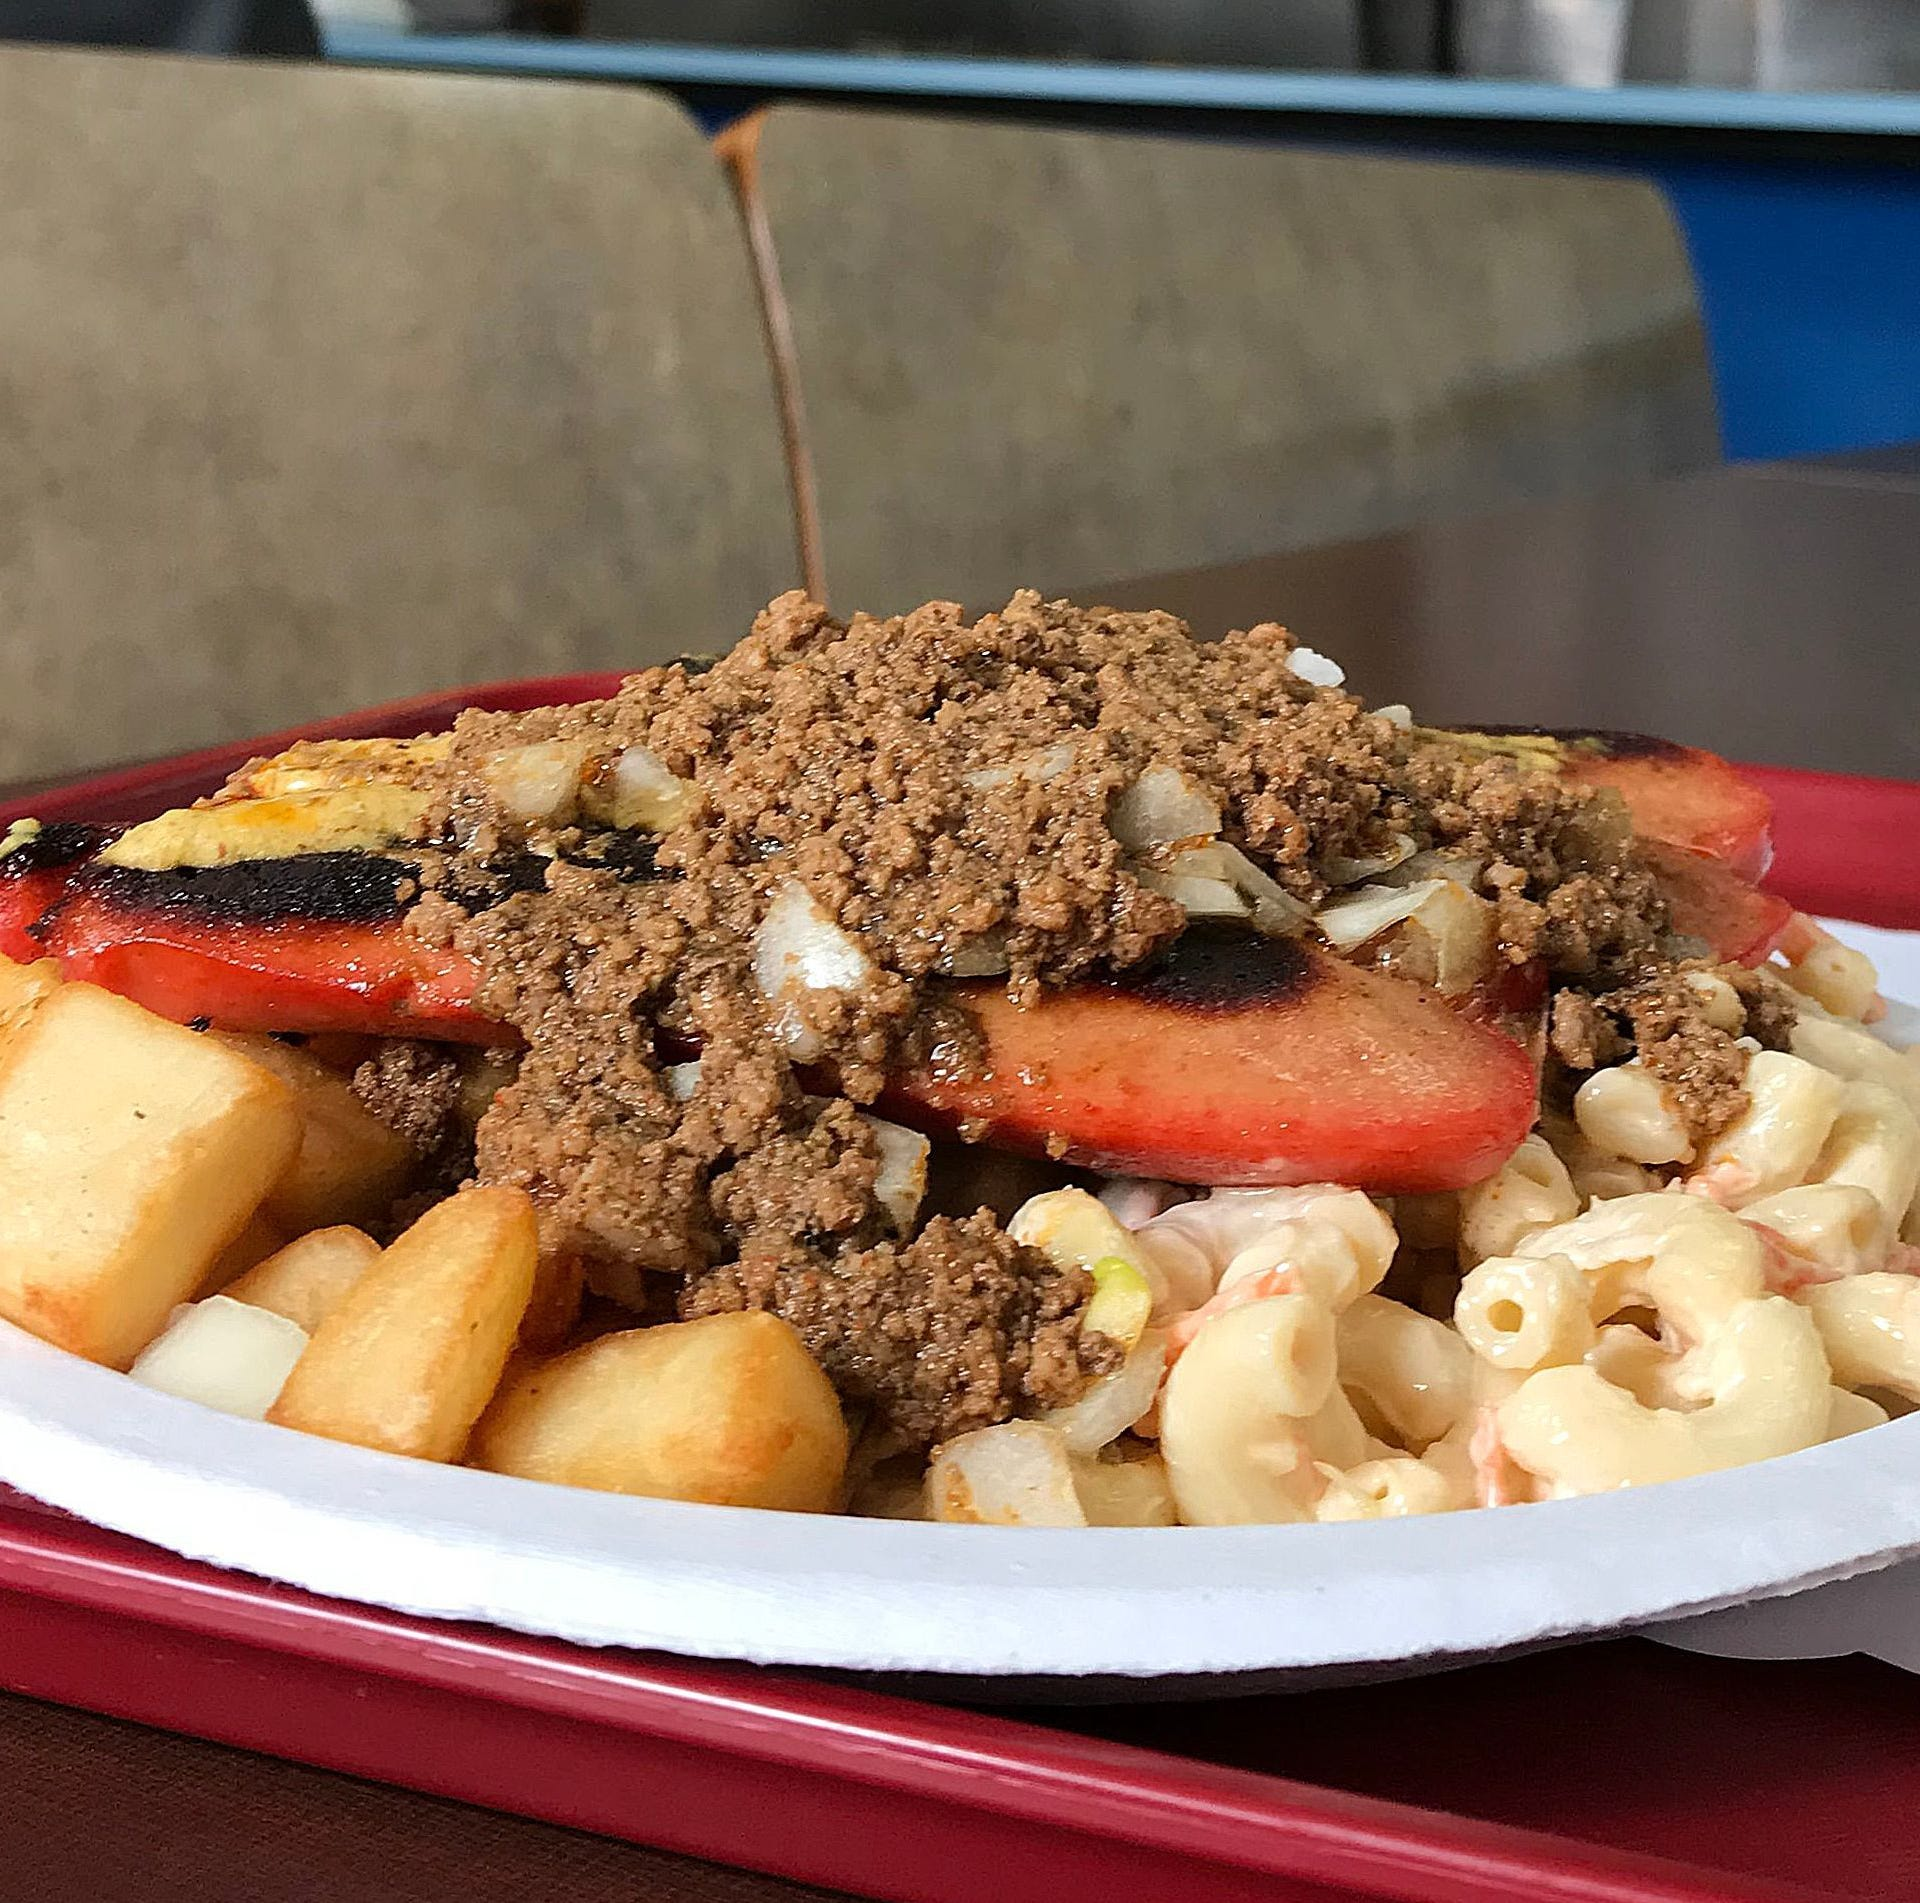 The Garbage Plate inspires a video game; play it at Fringe